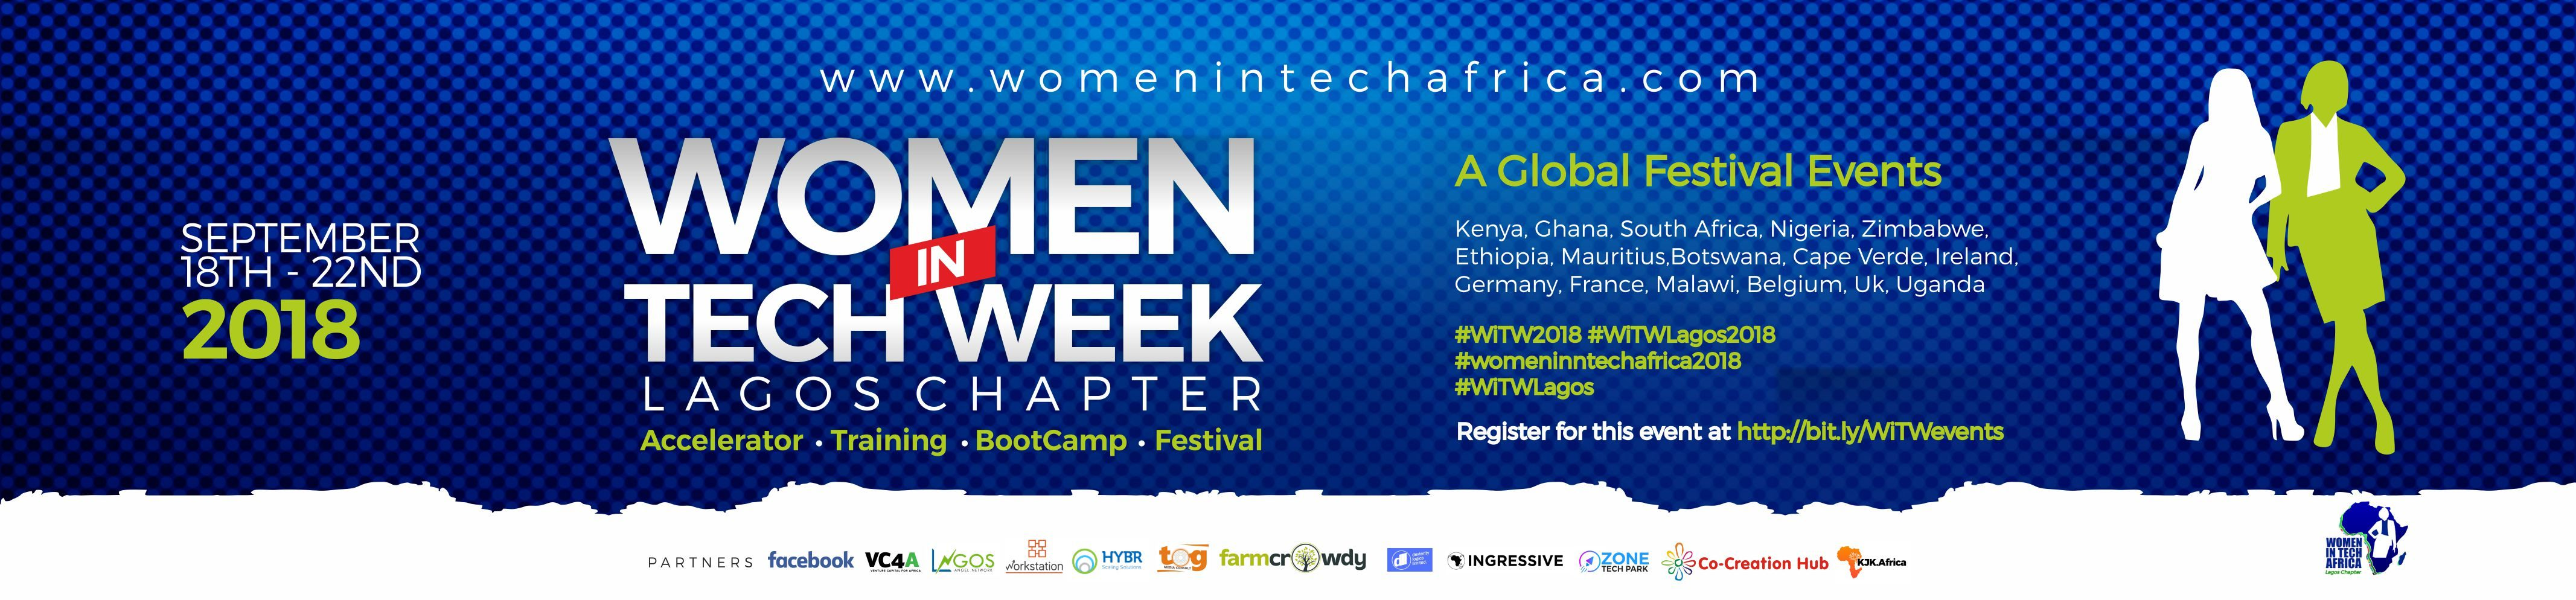 Women in Tech Week (WiTW) – Lagos Chapter